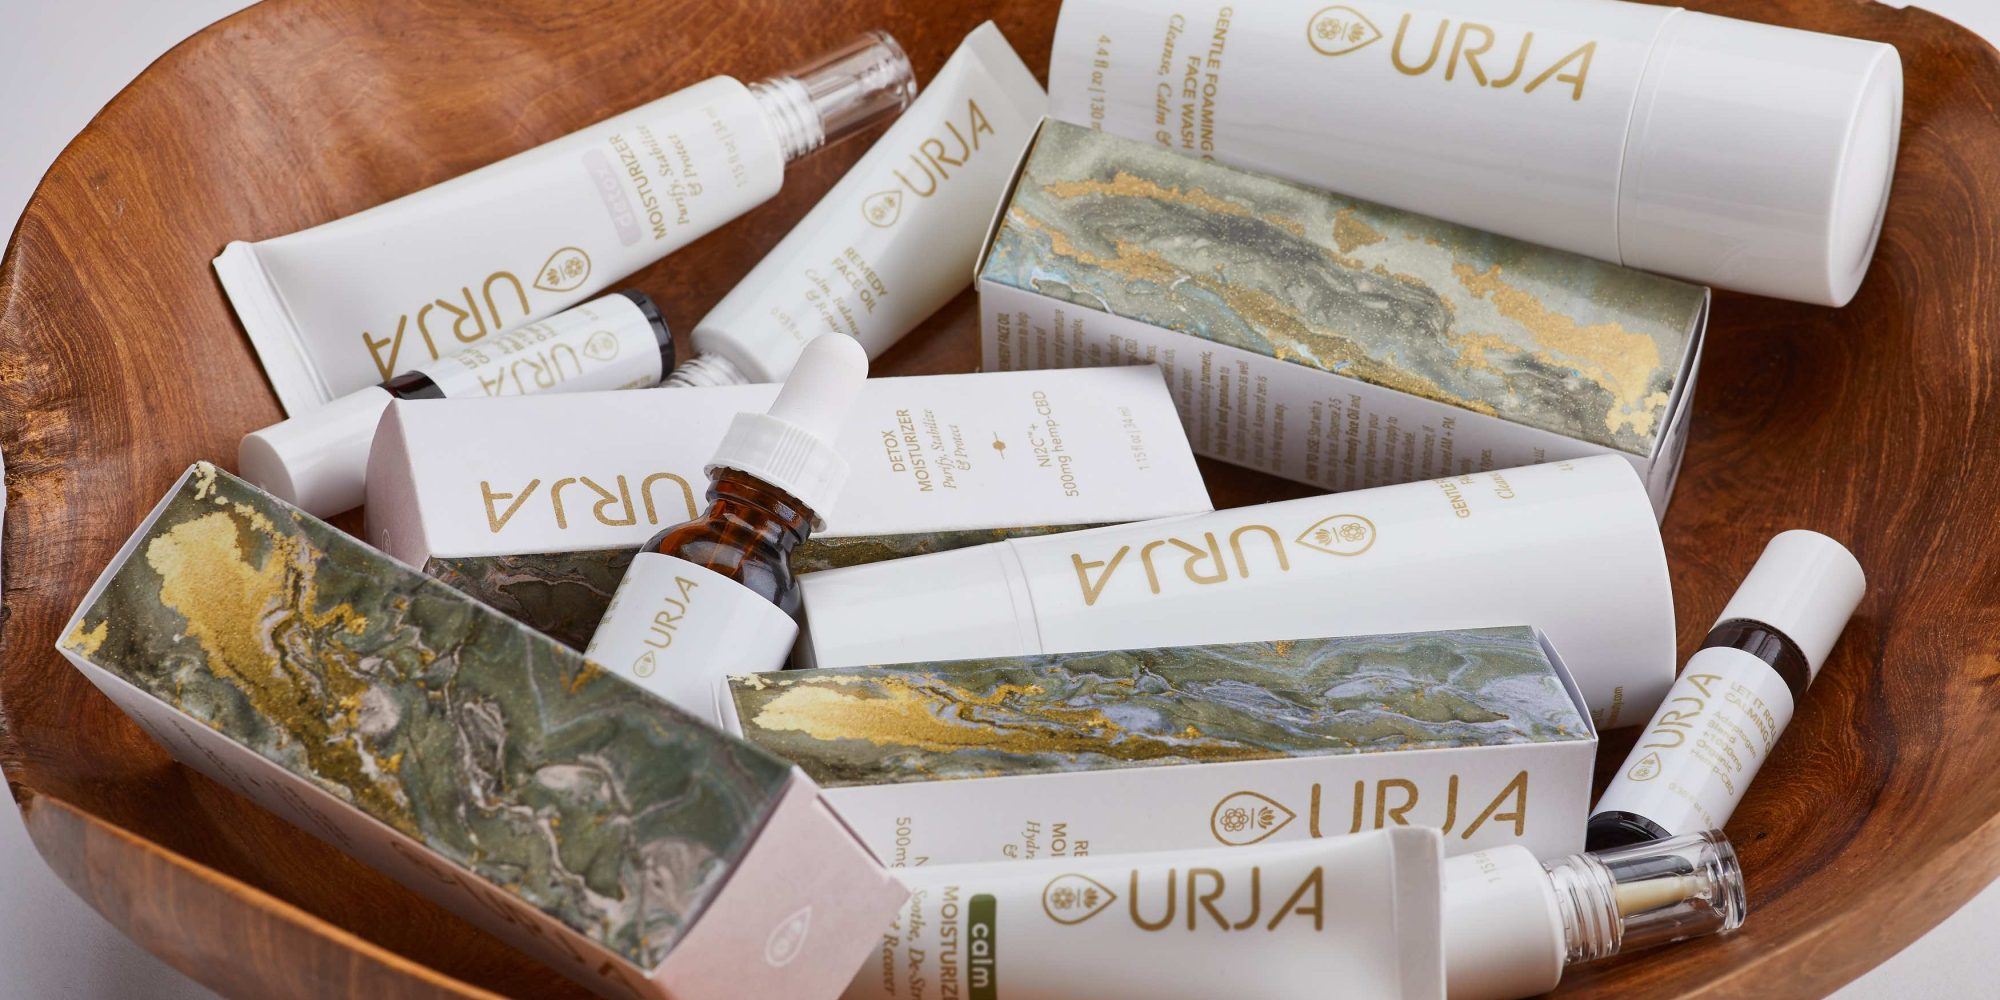 Created By Beauty Industry Veterans, New Skincare Brand Urja Has CBD And So Much More